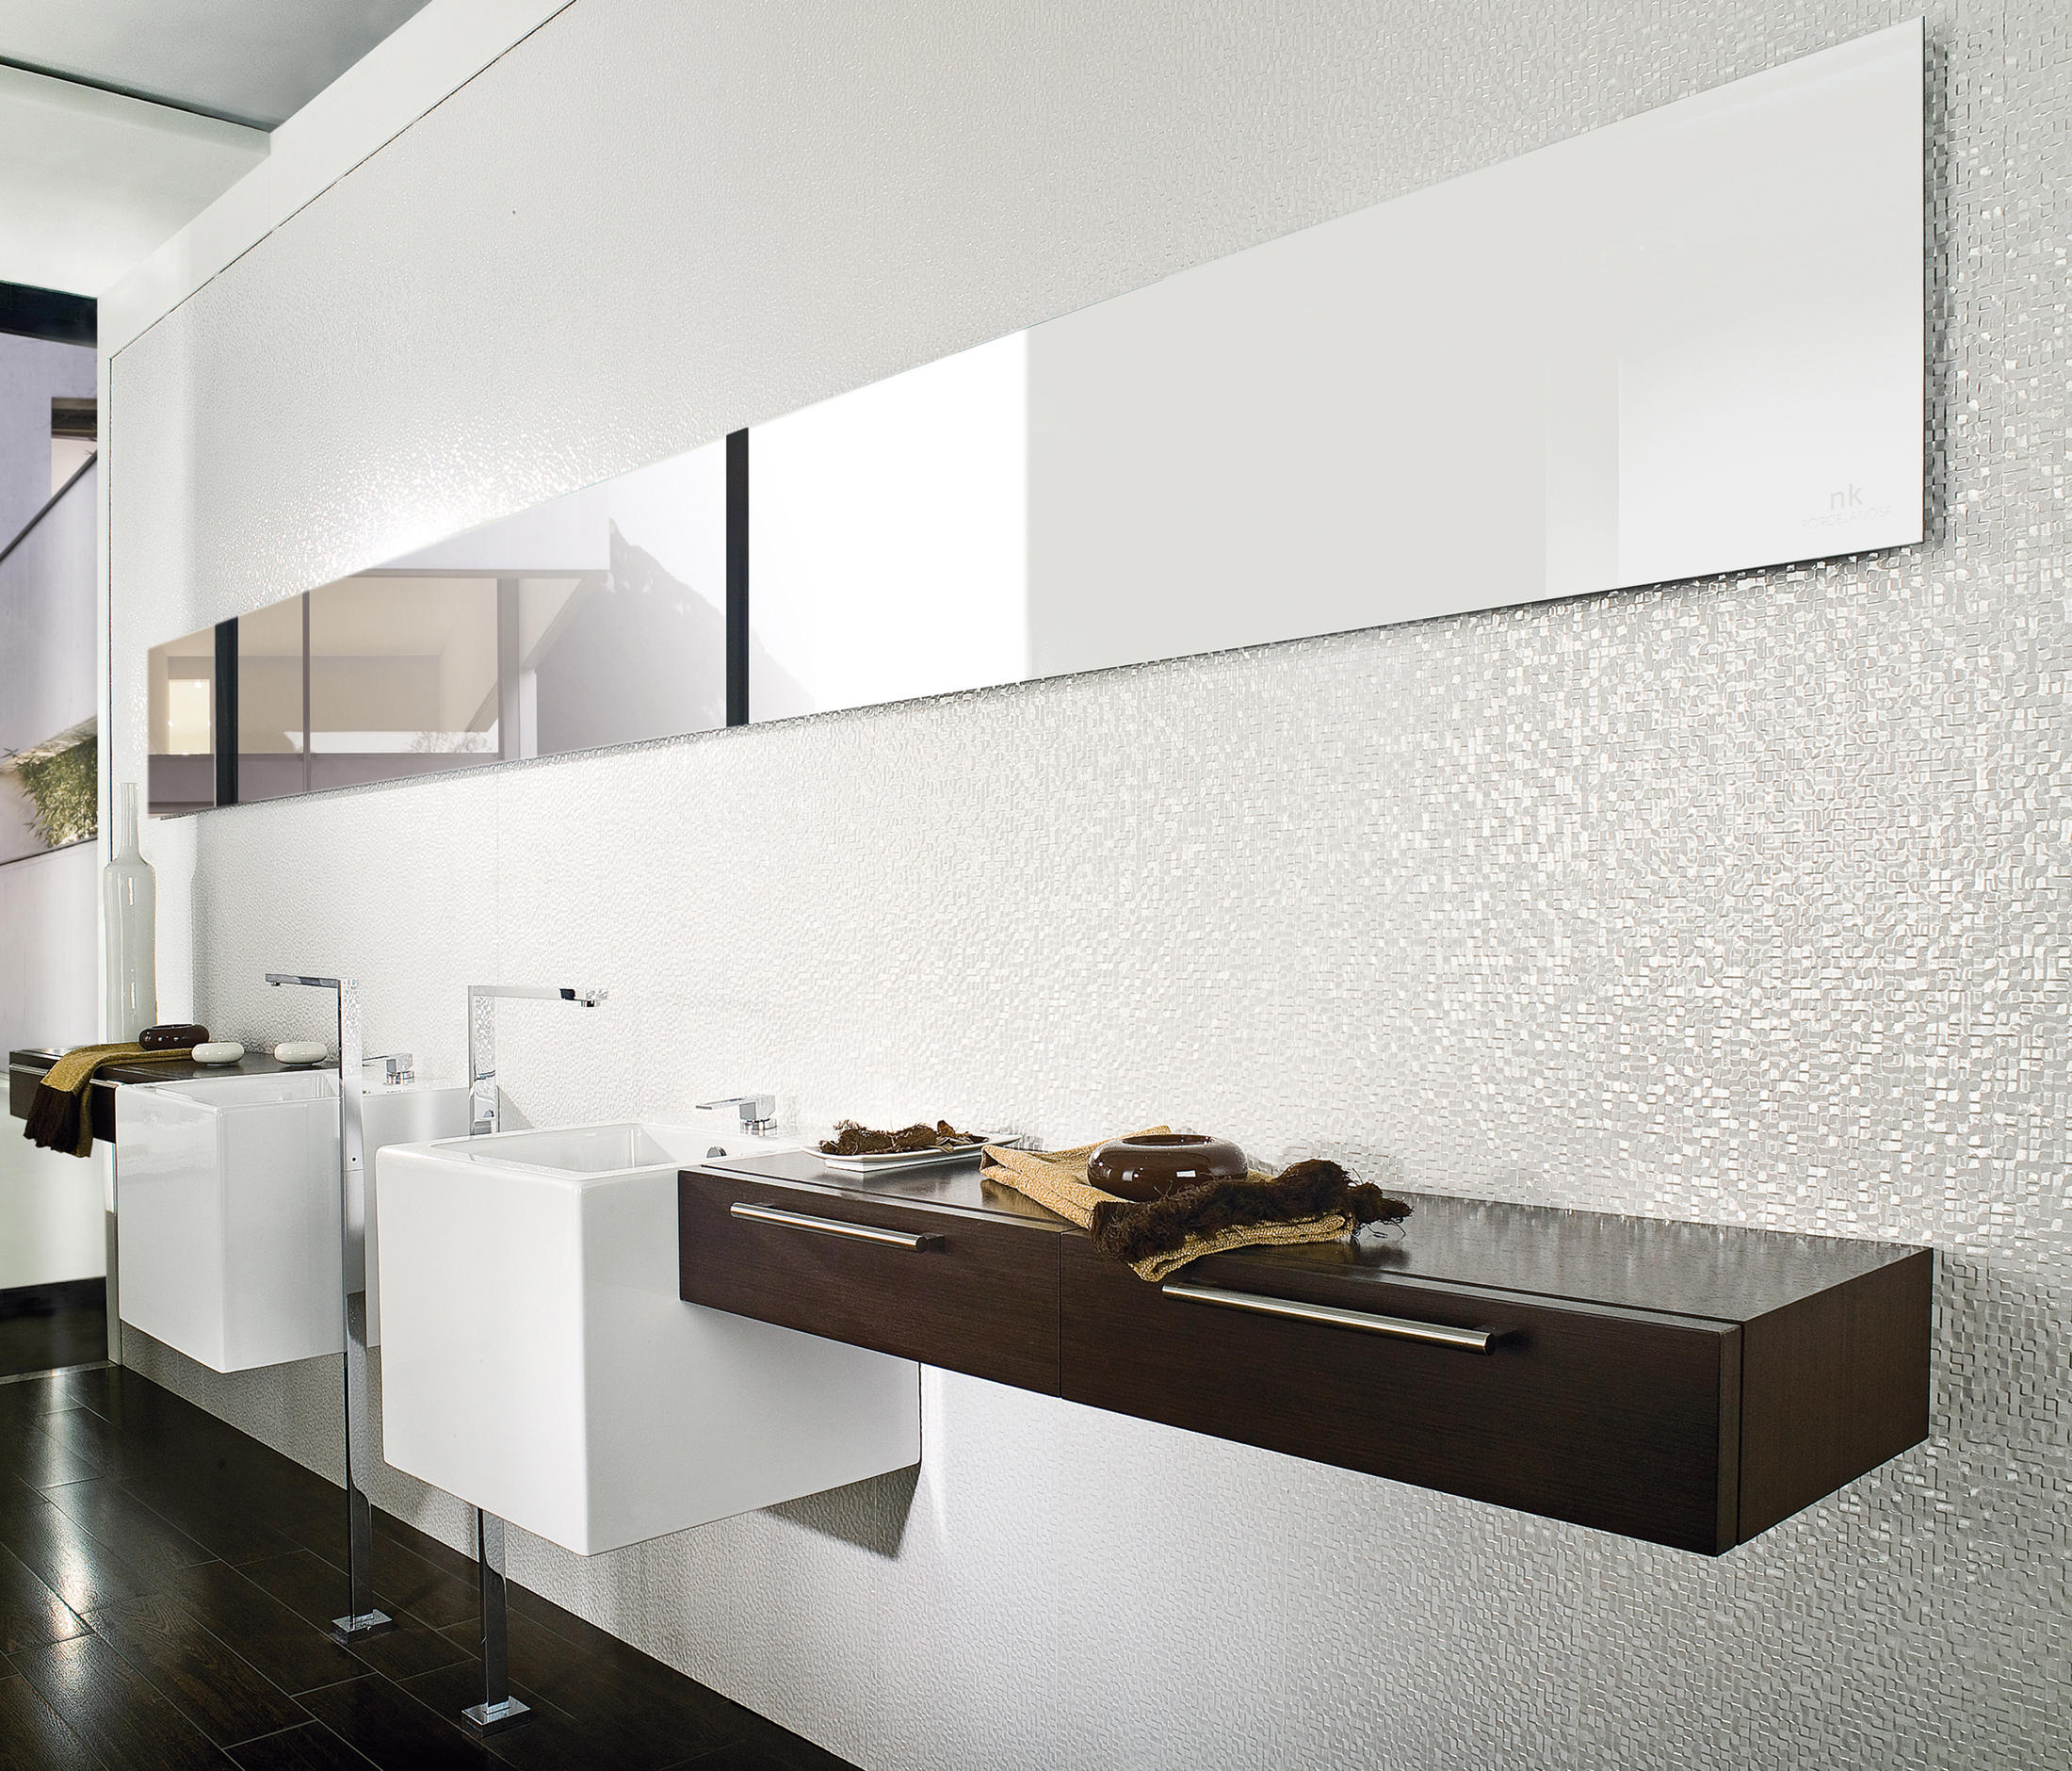 Cubica blanco ceramic tiles from porcelanosa architonic for Porcelanosa salle de bain